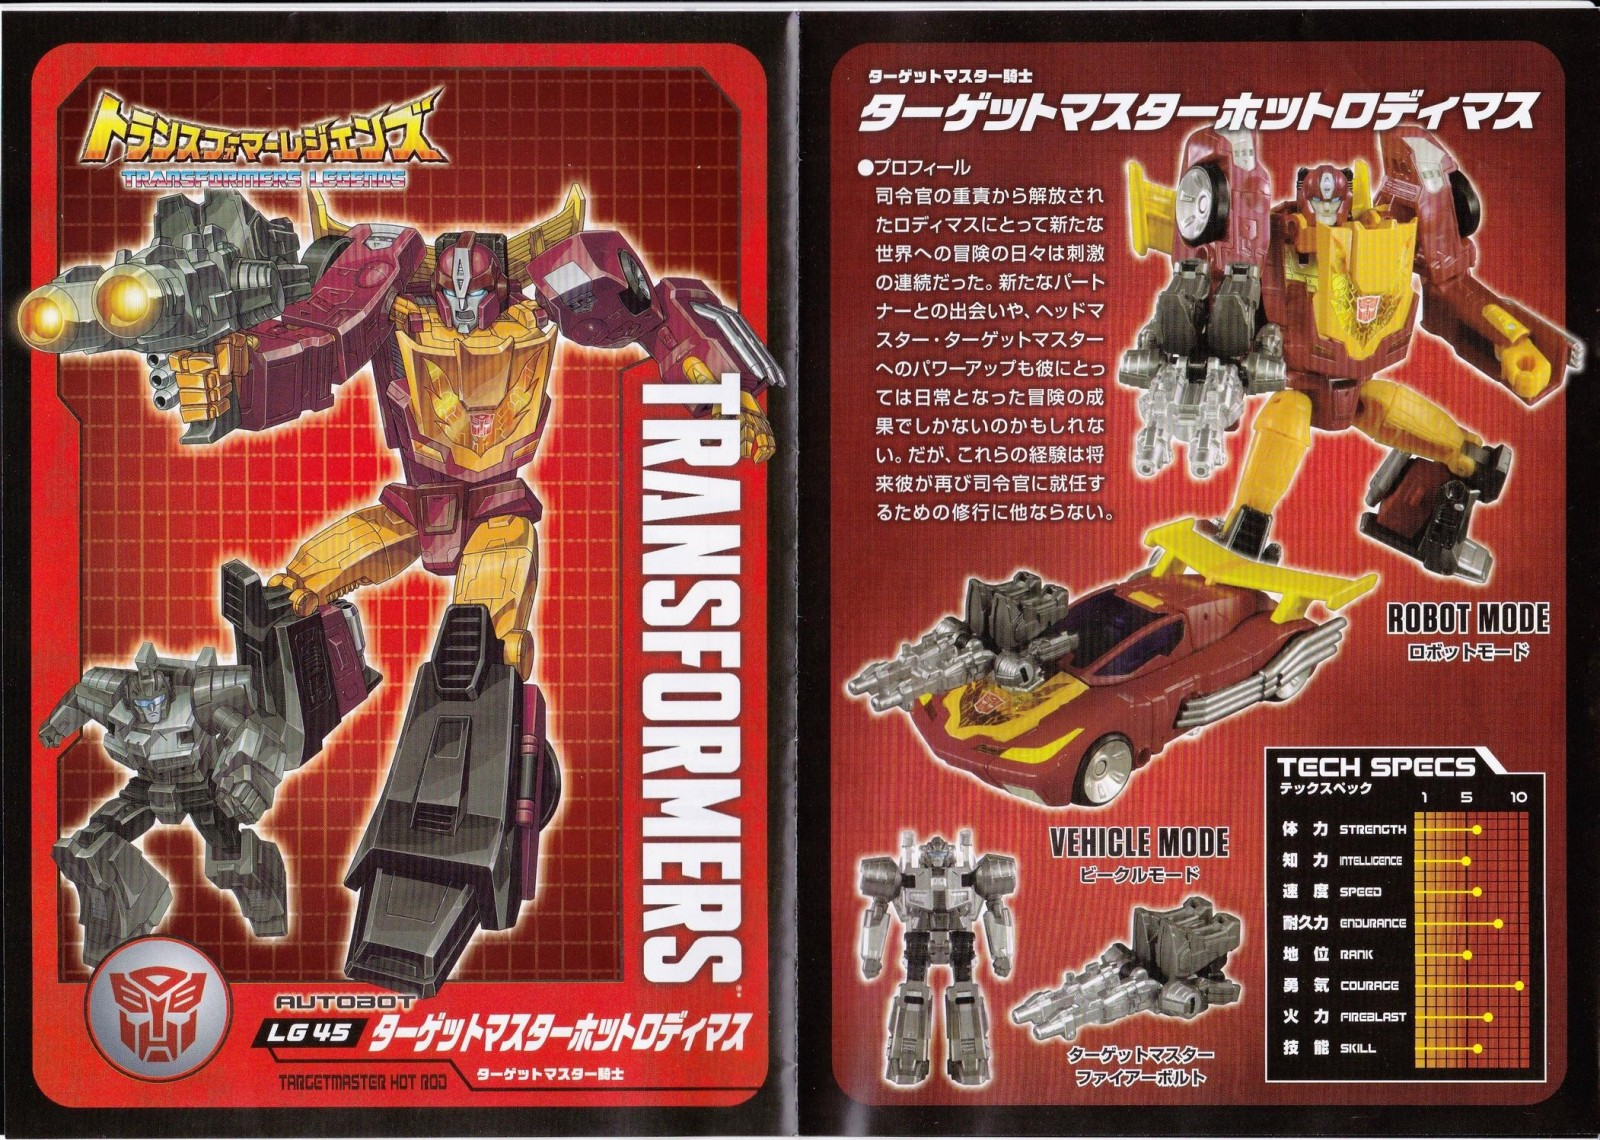 Transformers News: Images of Pack In Comics and Tech Specs for Takara Transformers Legends Kup, Hot Rod and Sharkticon